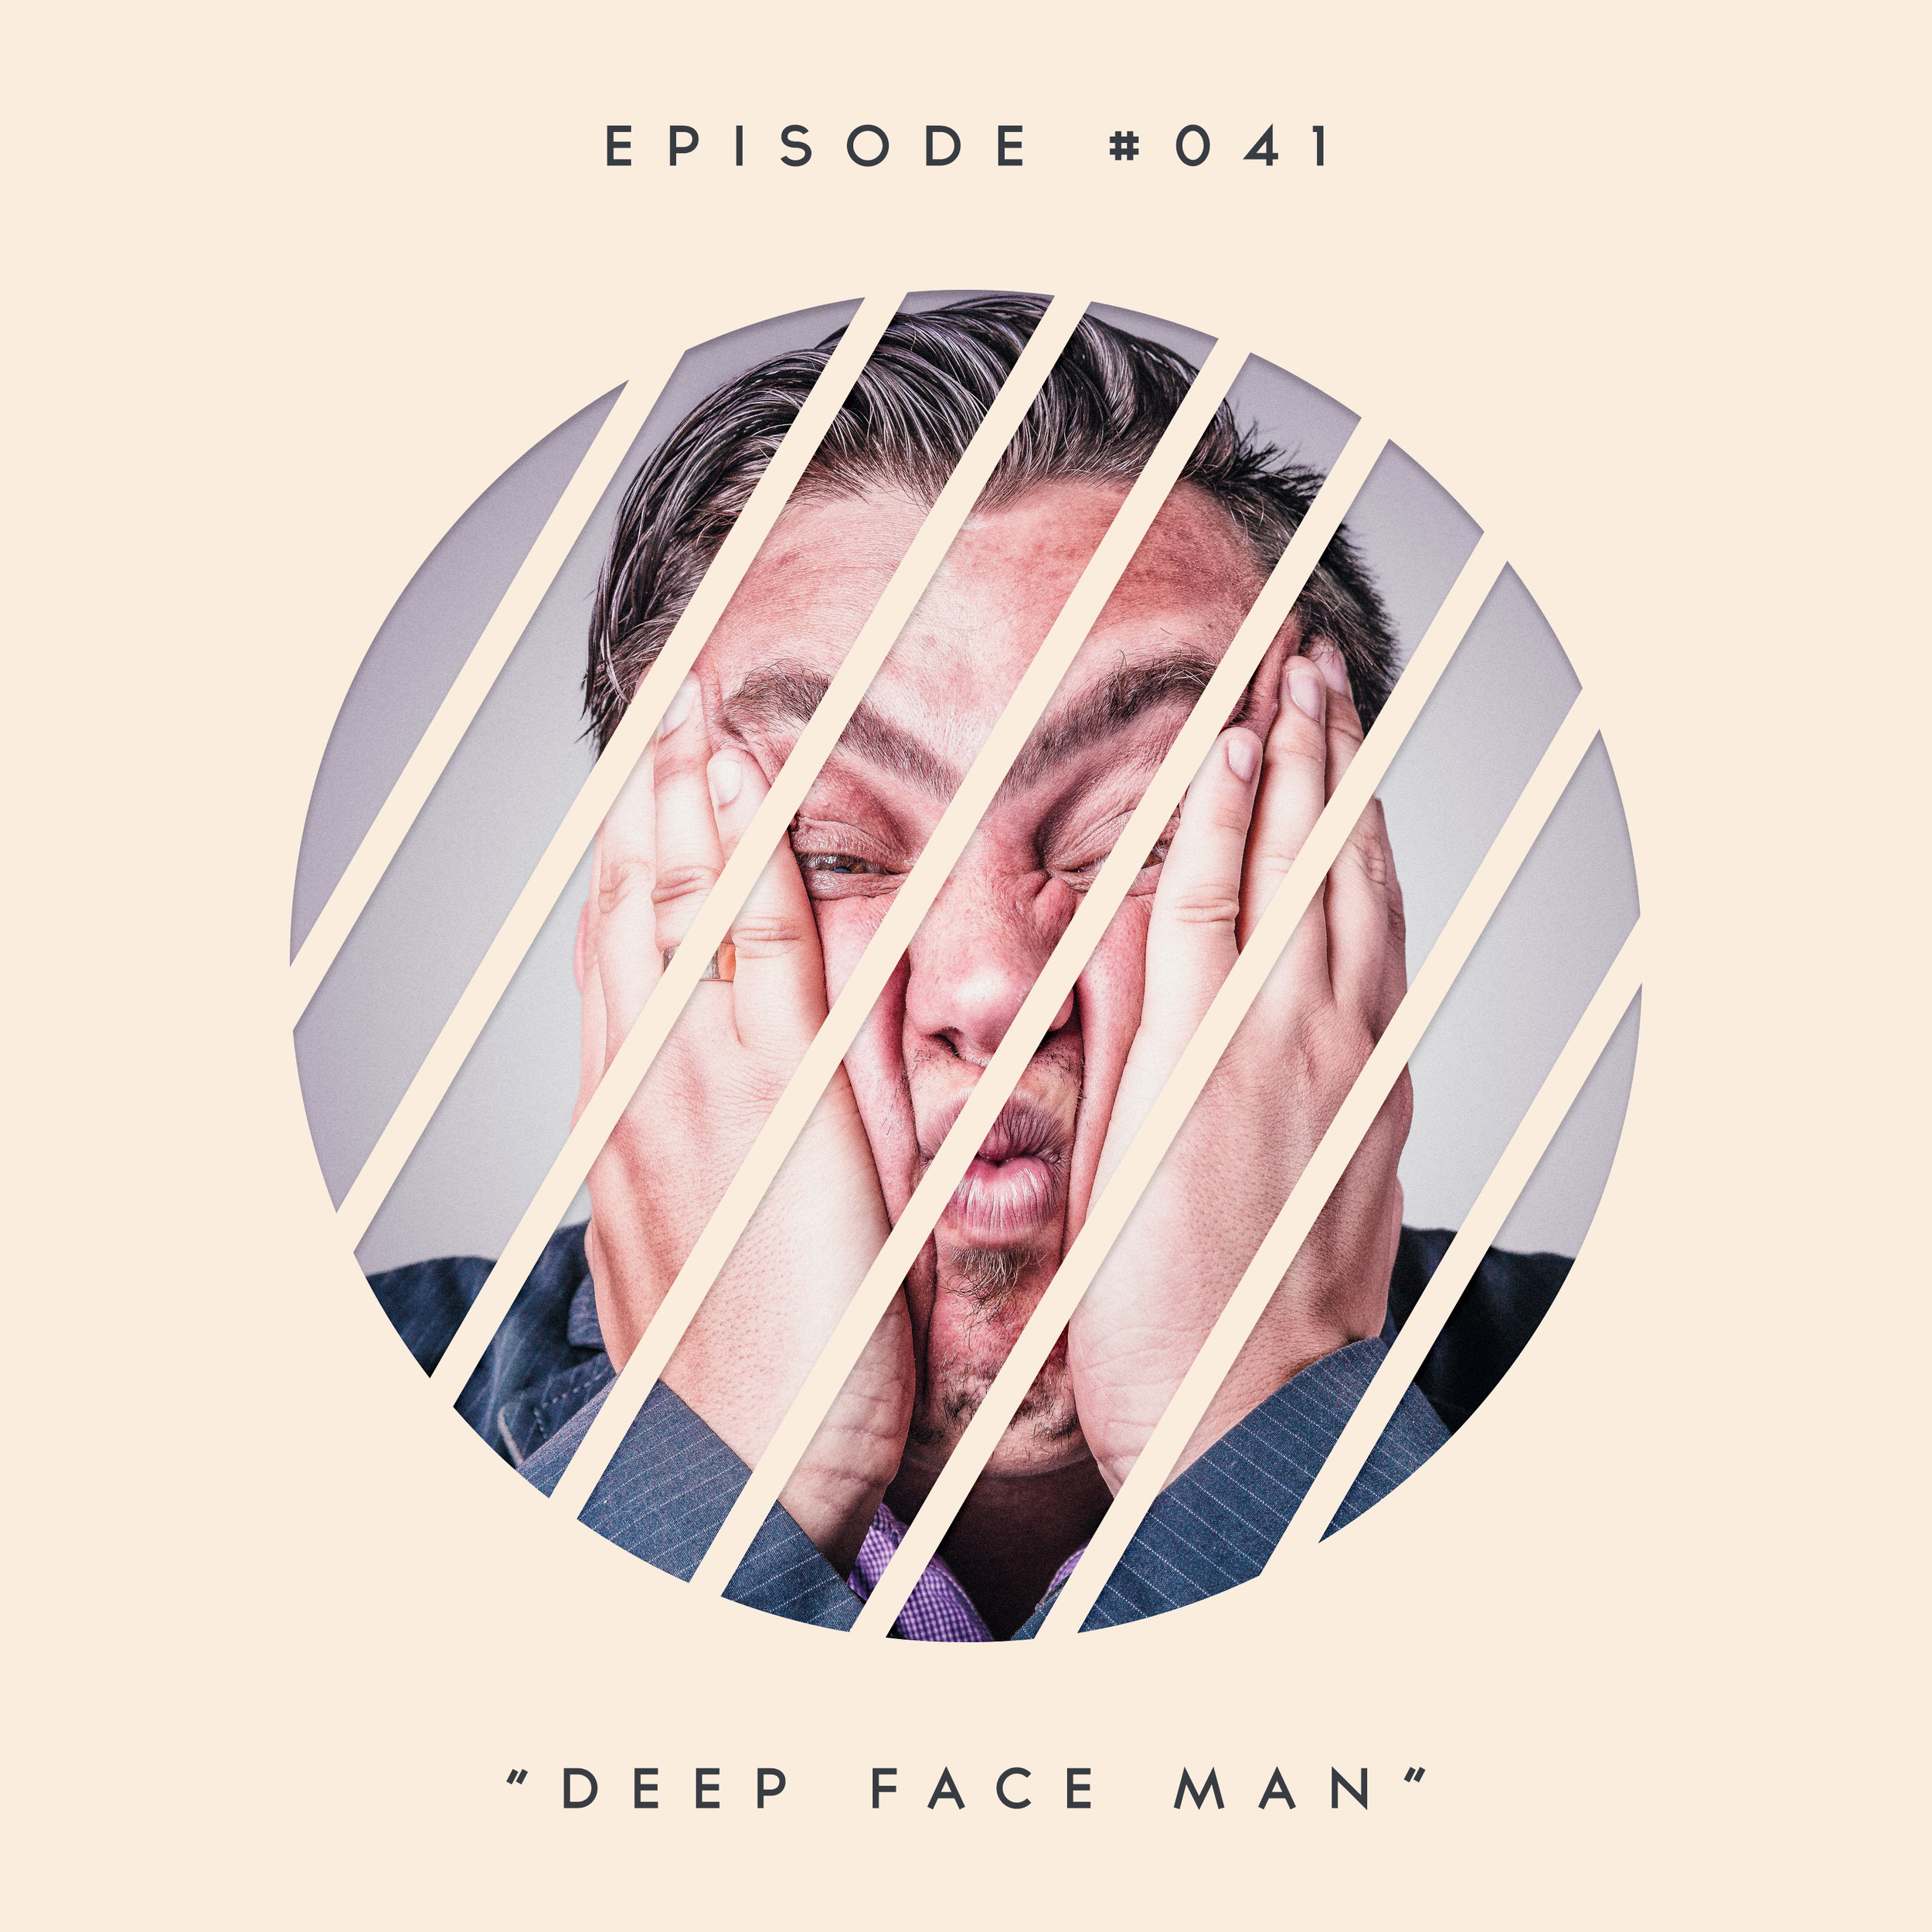 Deep-Face-Man.jpg